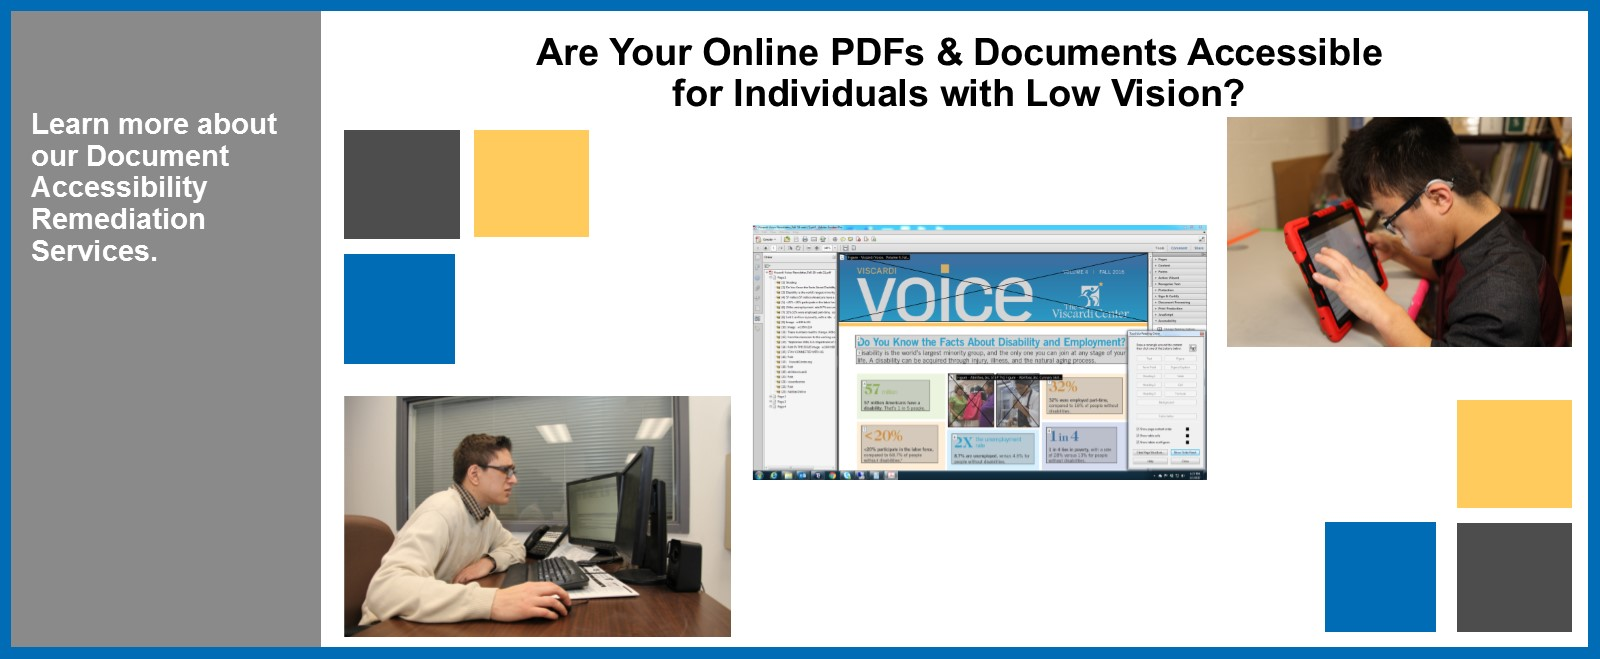 Are your online pdfs and documents accessible for individuals with low vision? Learn more about our Document Remediation Services.